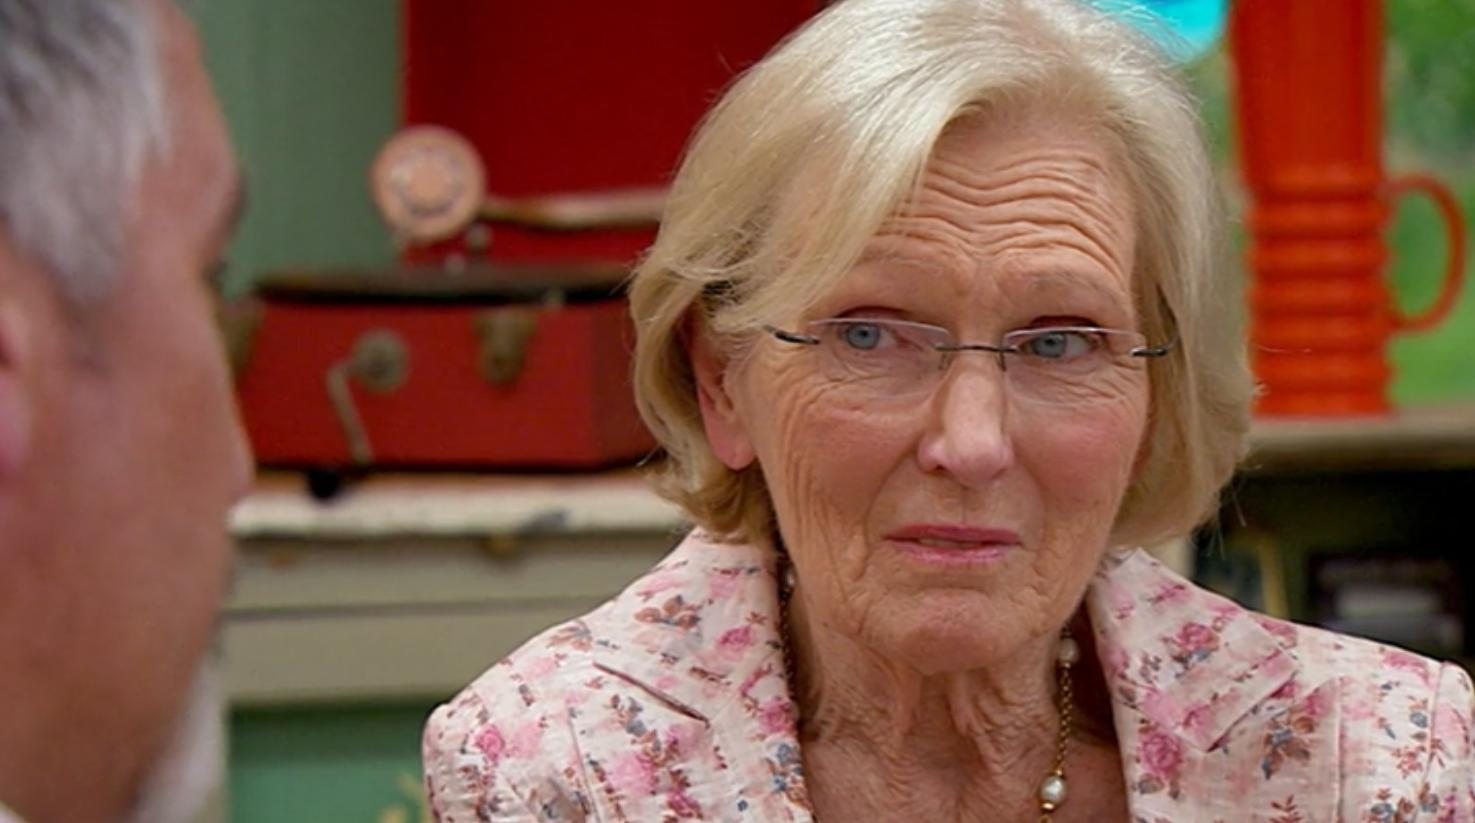 Mary Berry series 1 Bake Off